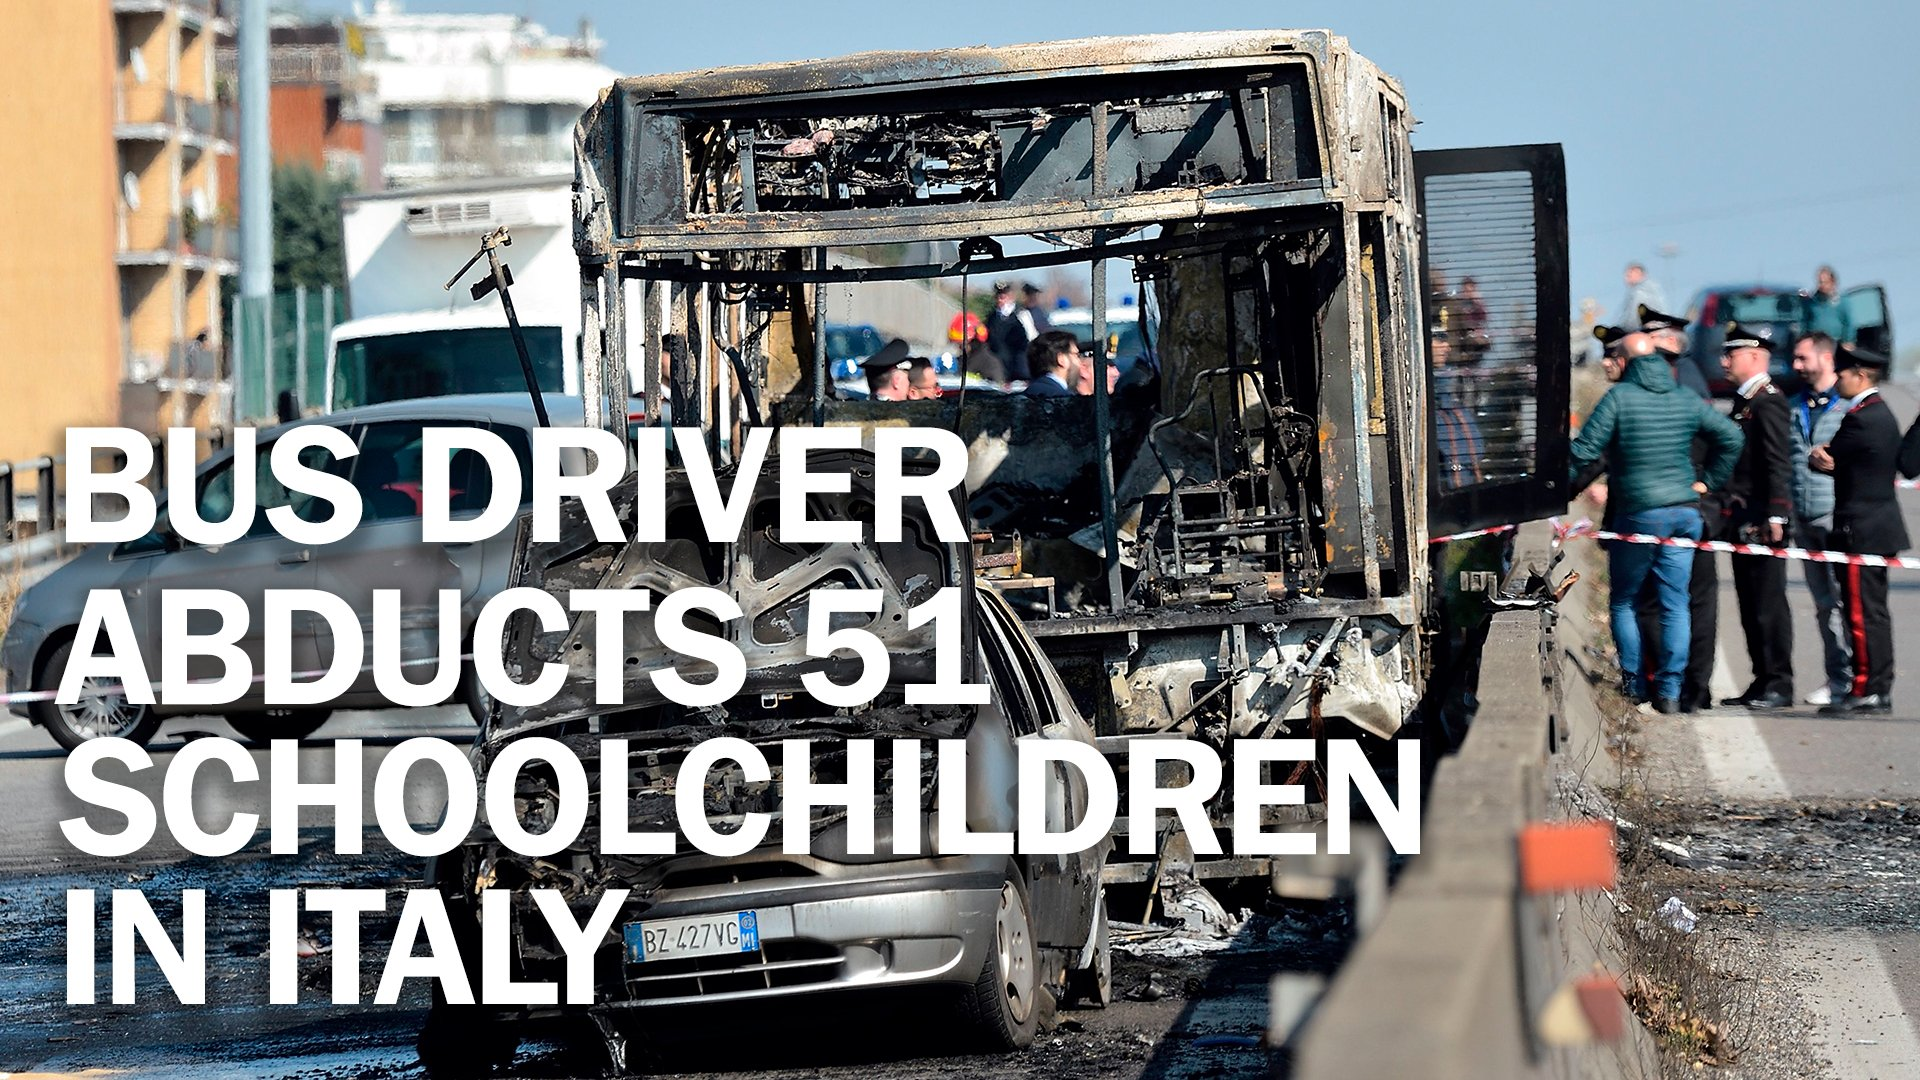 'No one will survive today.' Bus driver abducts 51 schoolchildren in Italy https://t.co/I8tftx4iN2 https://t.co/EaTeOHoOEl